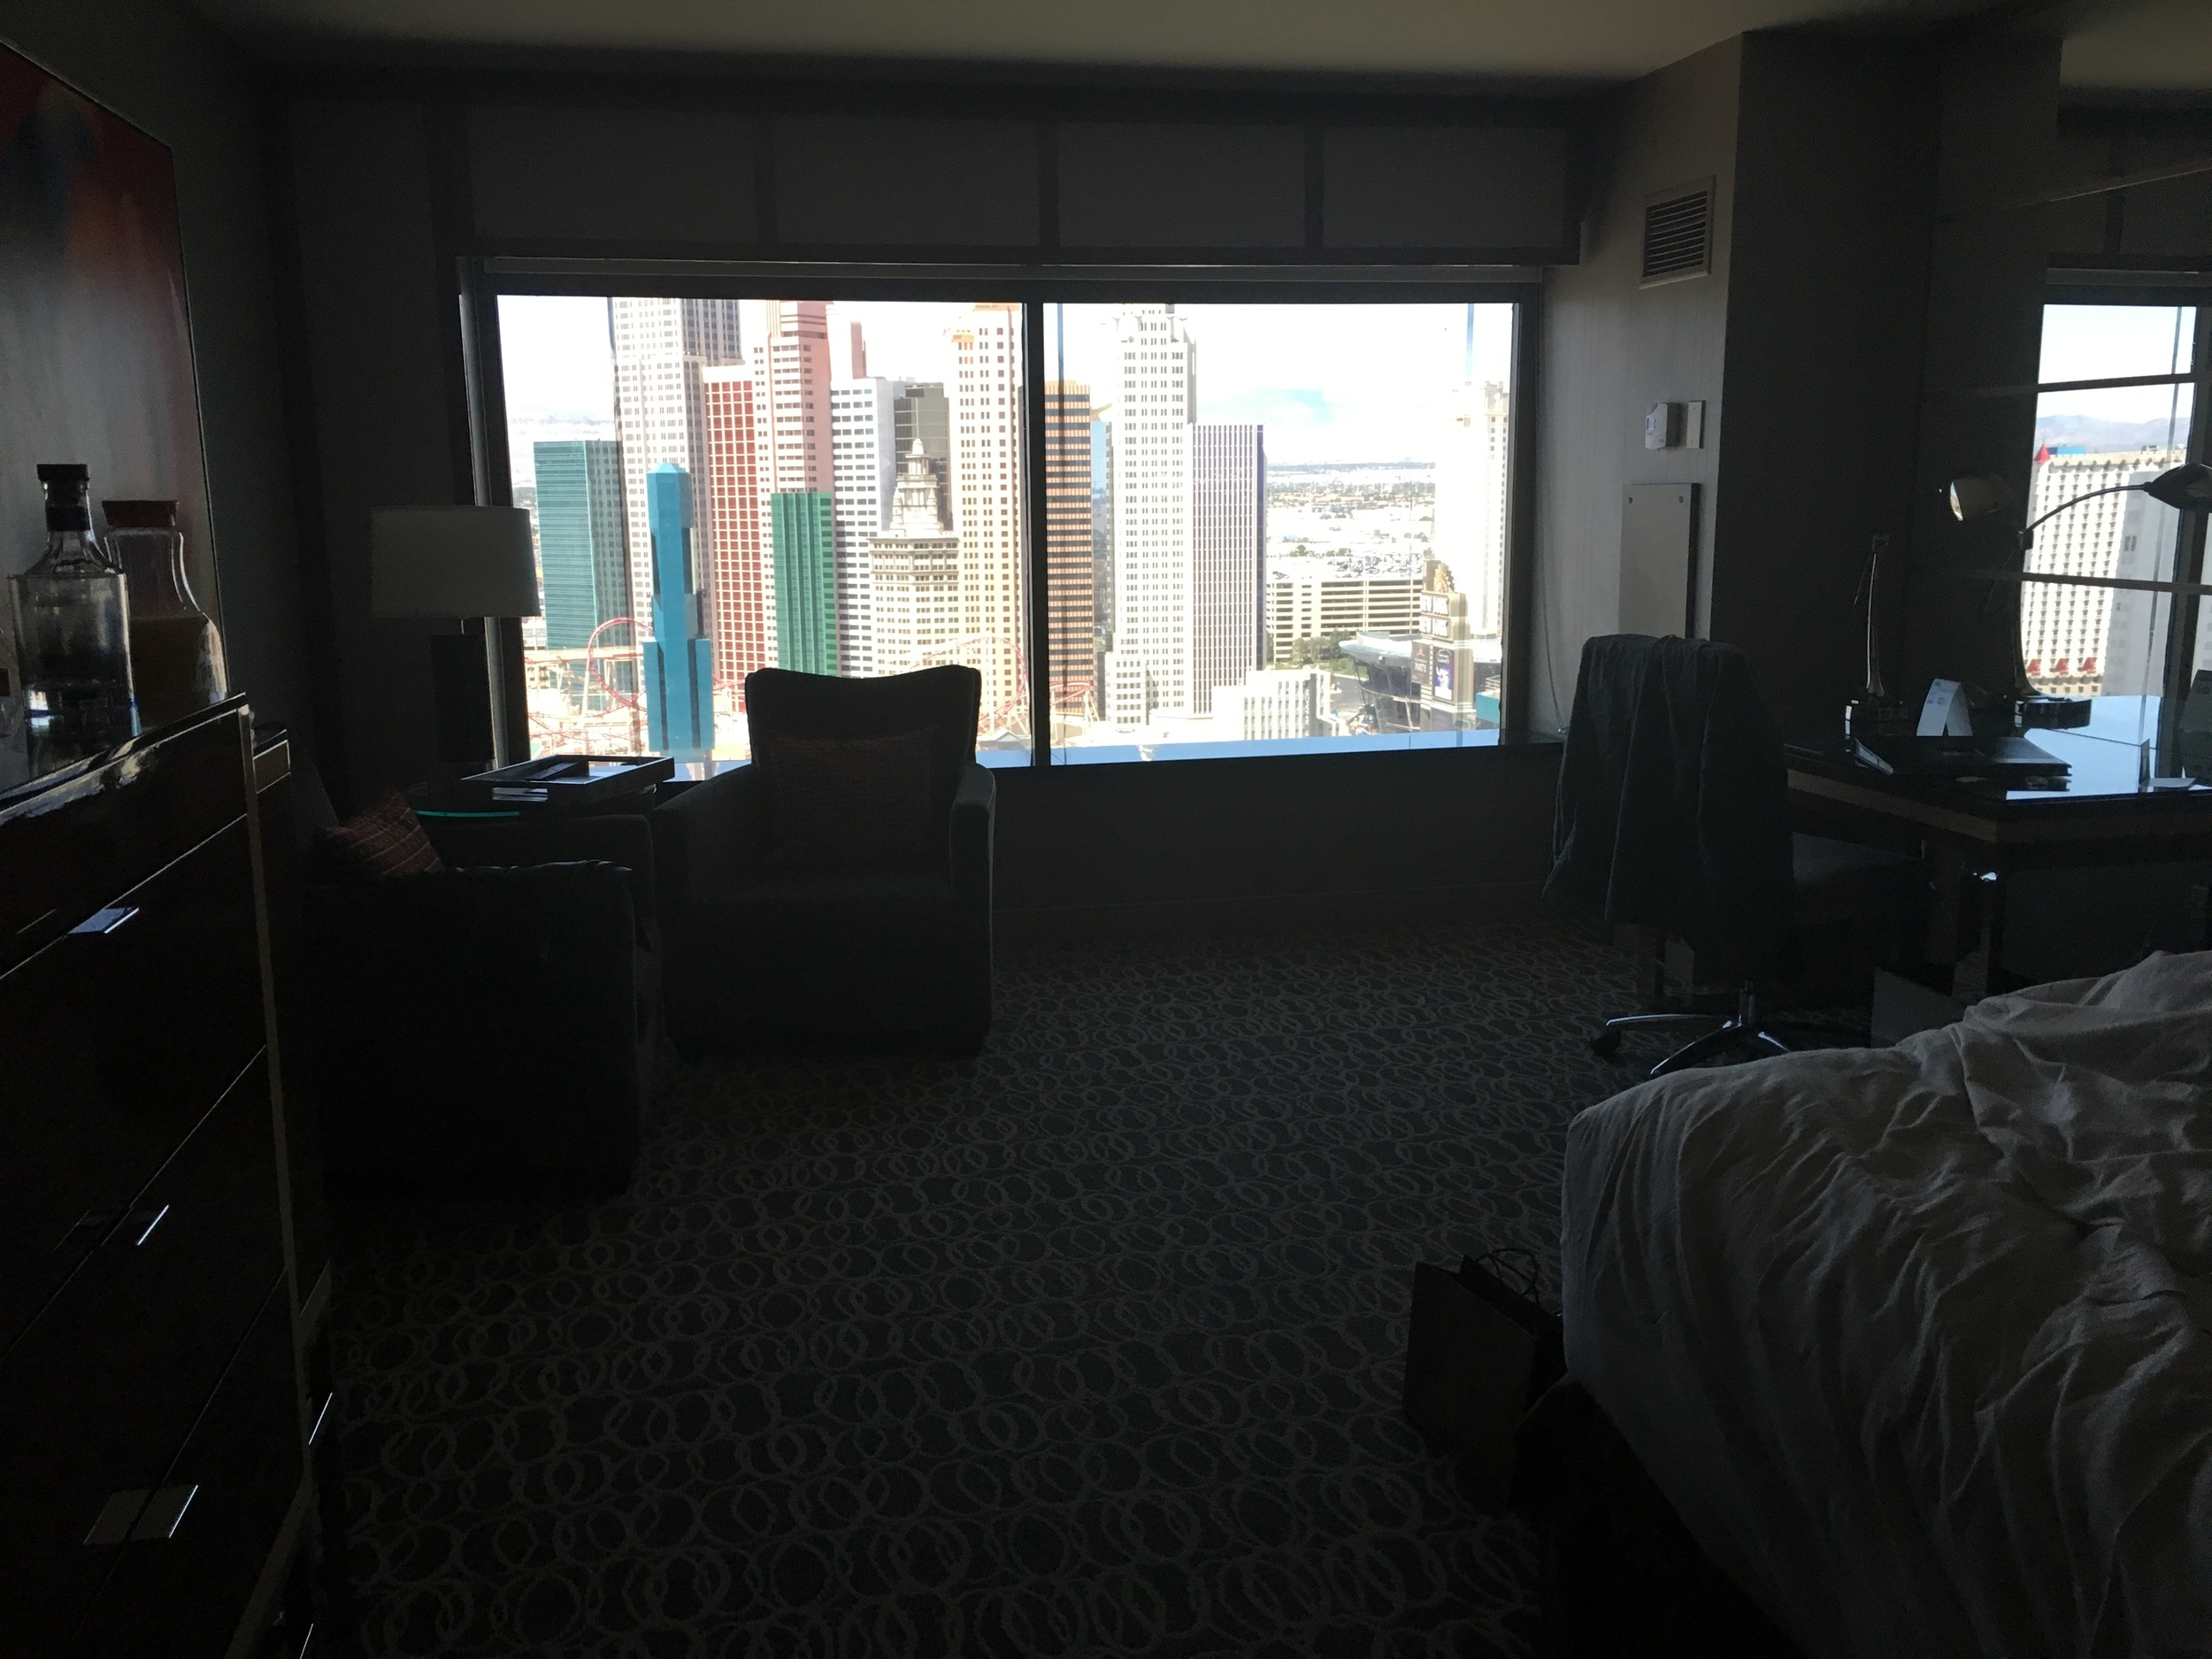 Upgraded Birthday hotel room at the MGM Grand with a view of the Strip